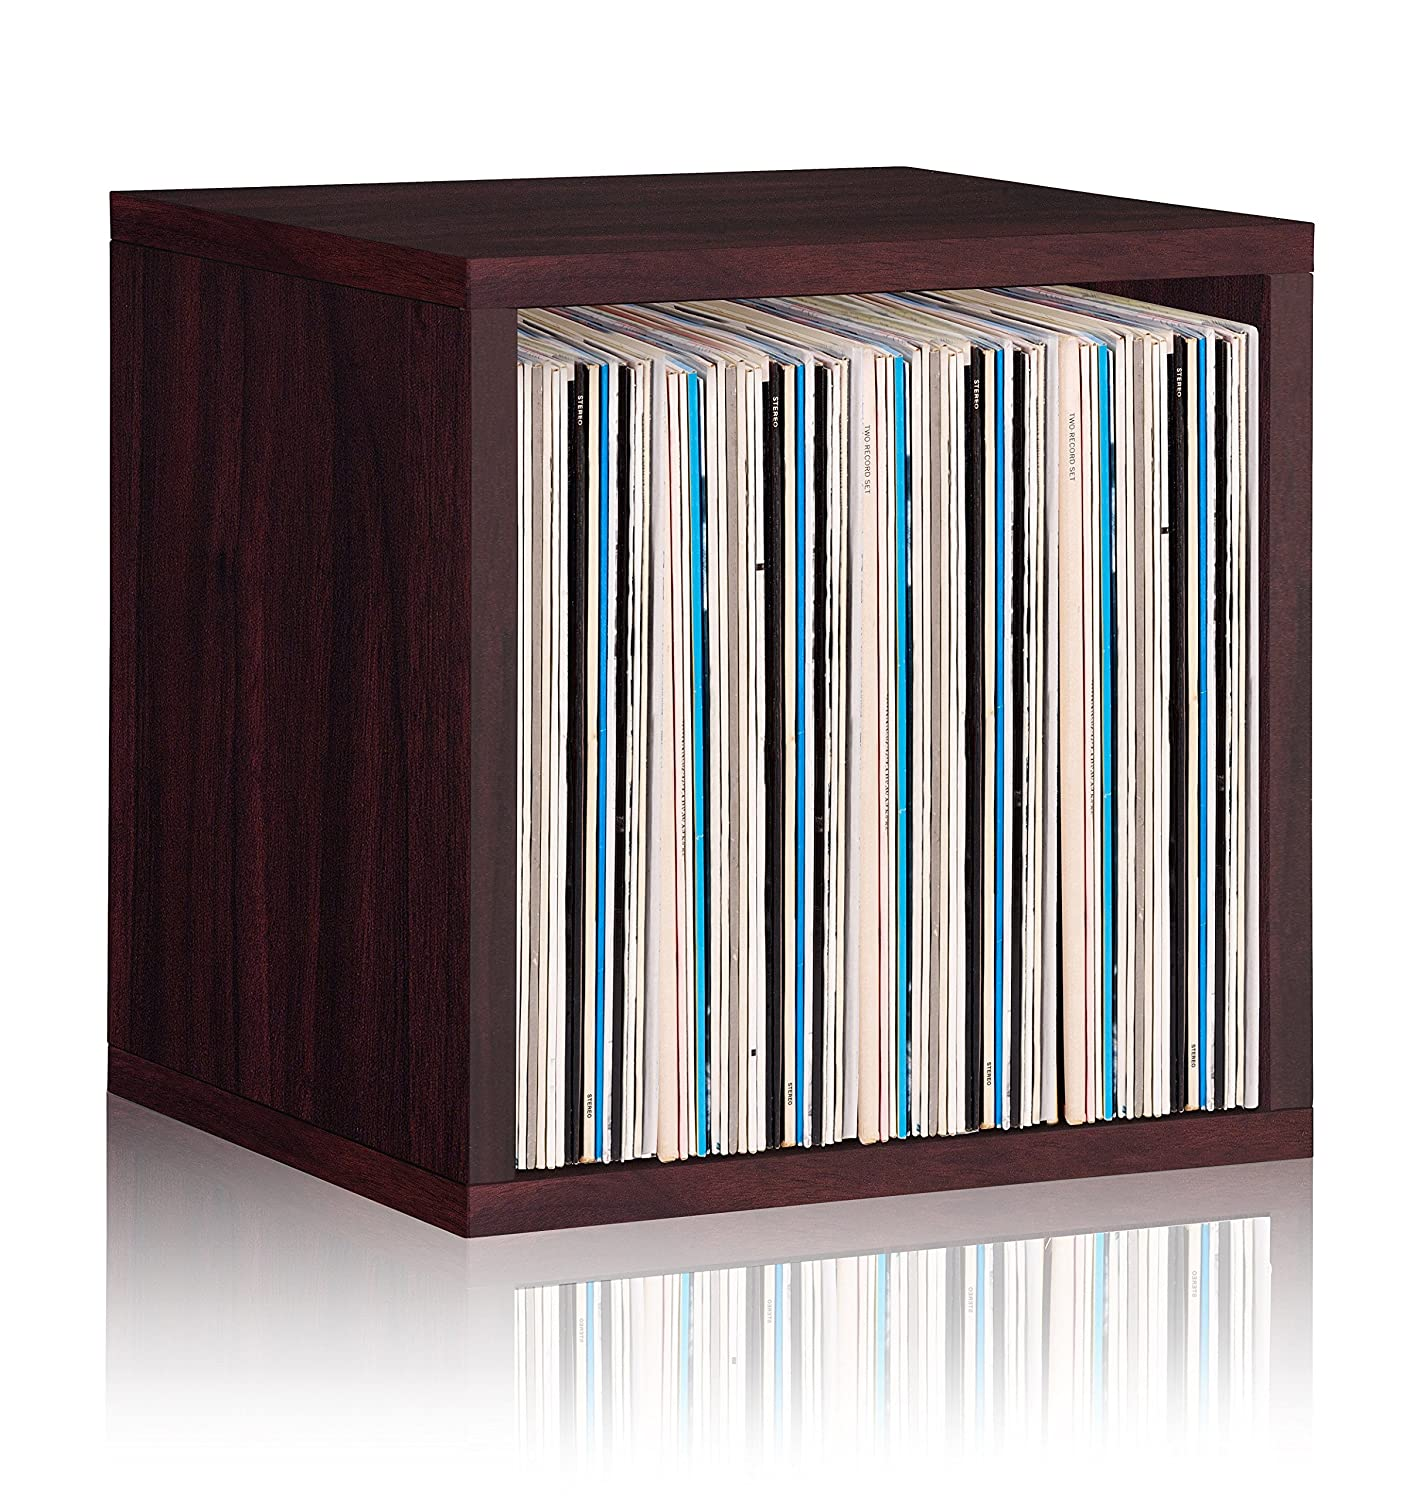 vinyl crate box fullxfull product il storage records record collection wooden lp shelf albums